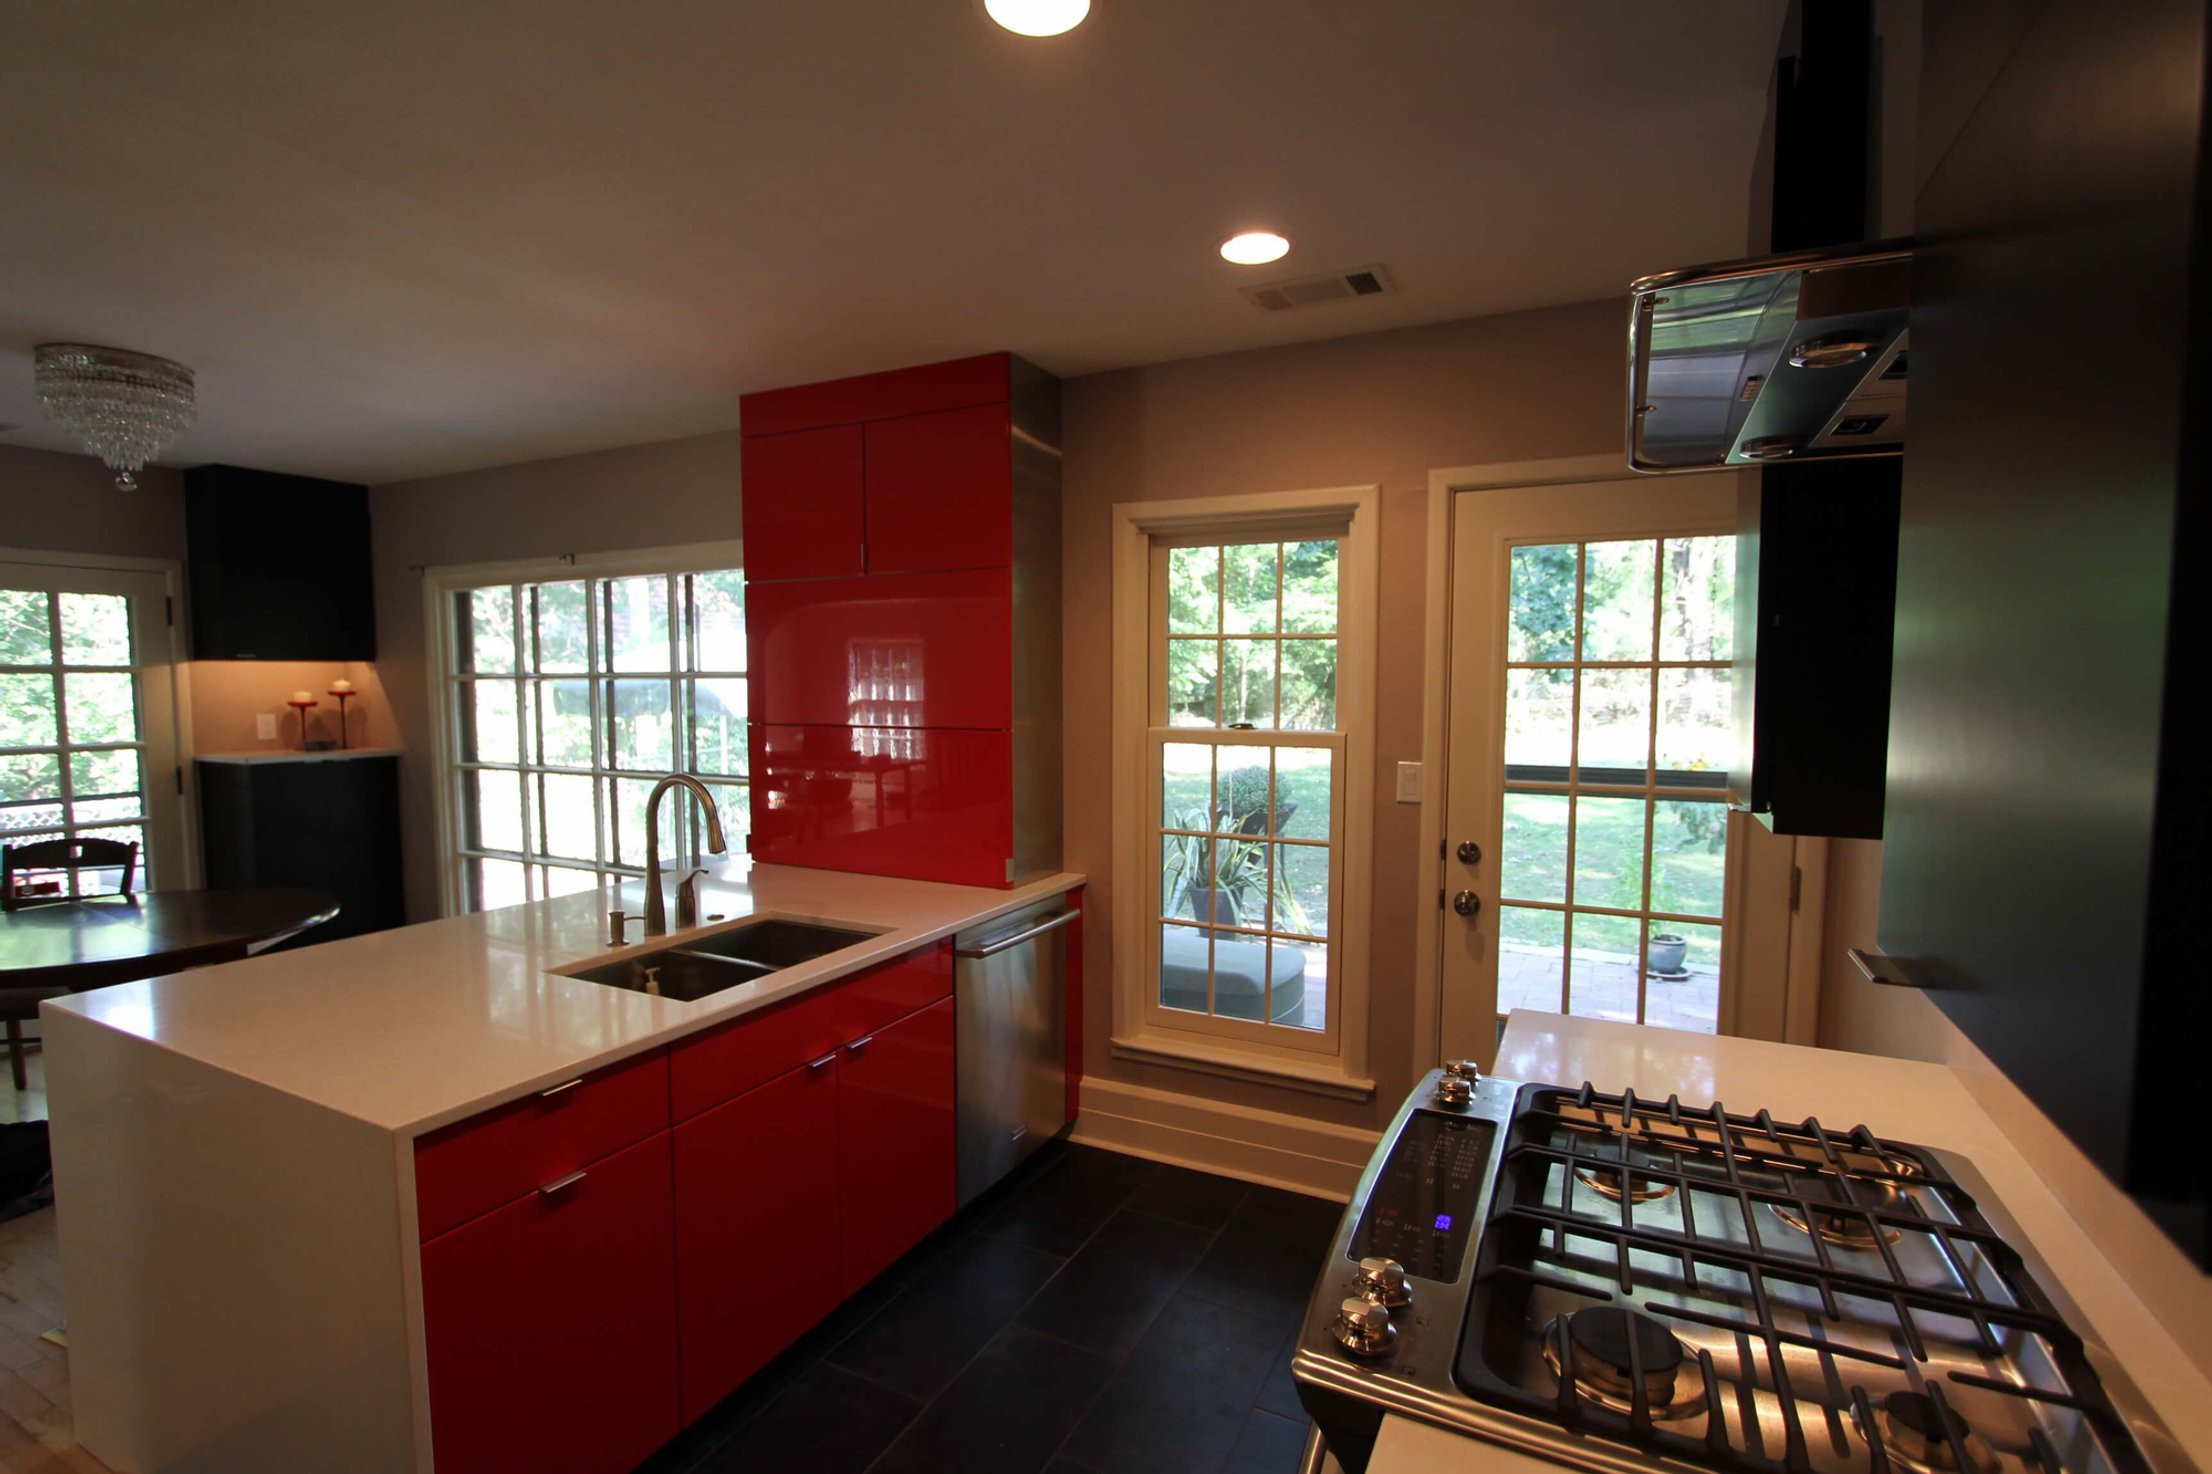 Add some color to your kitchen